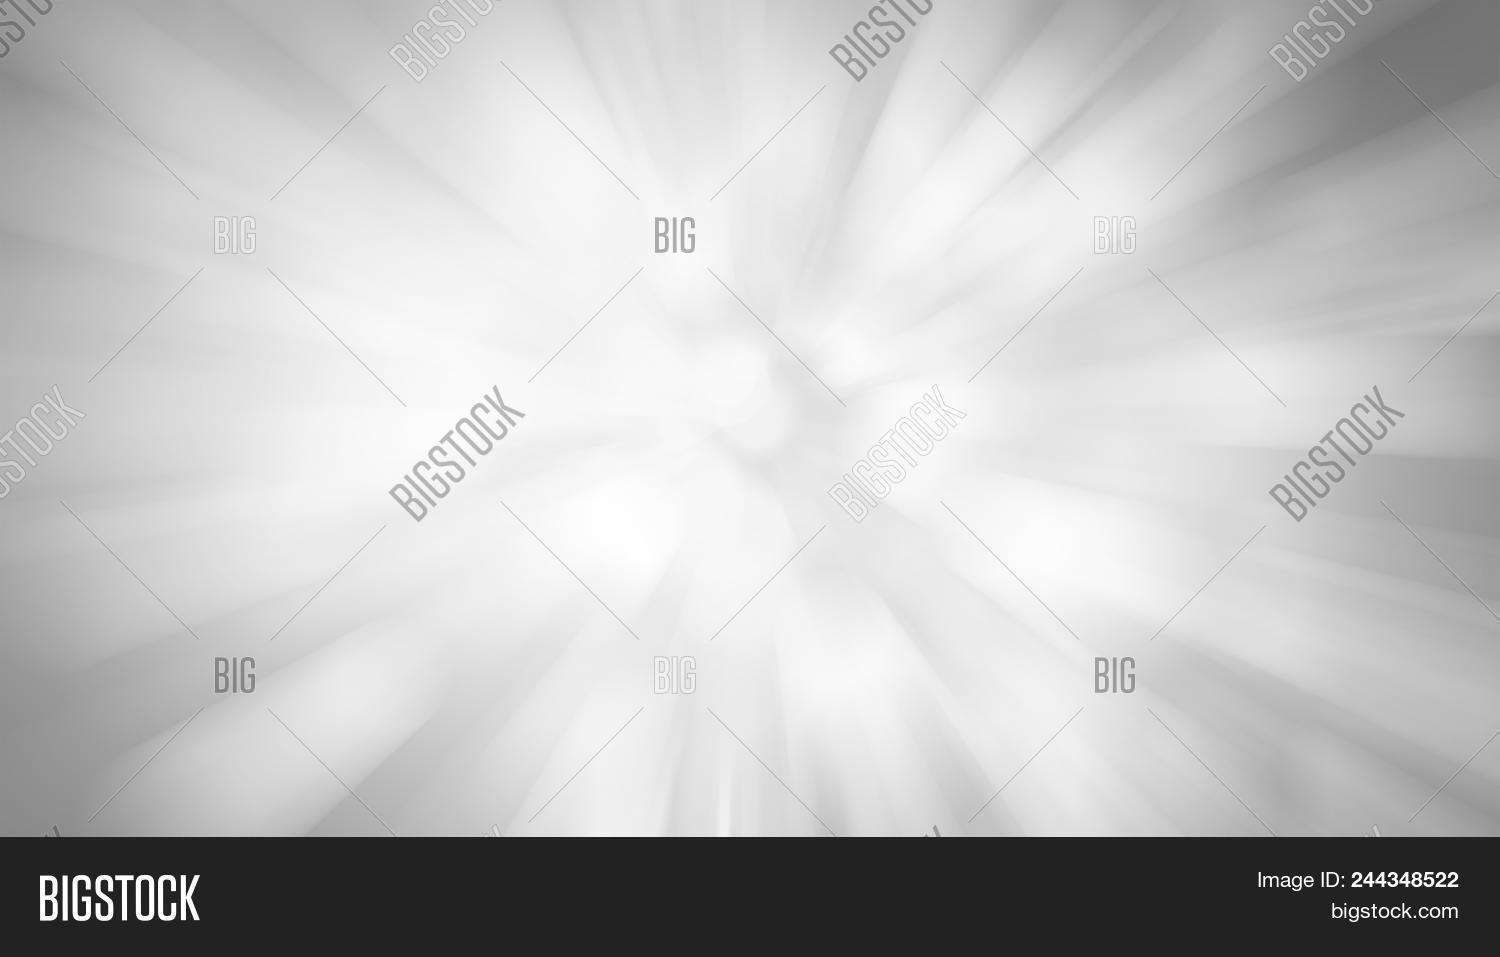 abstract,backdrop,background,banner,bg,black,brochure,card,concept,corporate,cover,creative,design,digital,drawing,elegant,element,flyer,fractal,futuristic,geometric,gradient,graphic,gray,grey,illustration,layout,light,line,modern,motion,page,paper,pattern,poster,shiny,spotlight,stripe,style,tech,technology,template,texture,trendy,wall,wallpaper,web,white